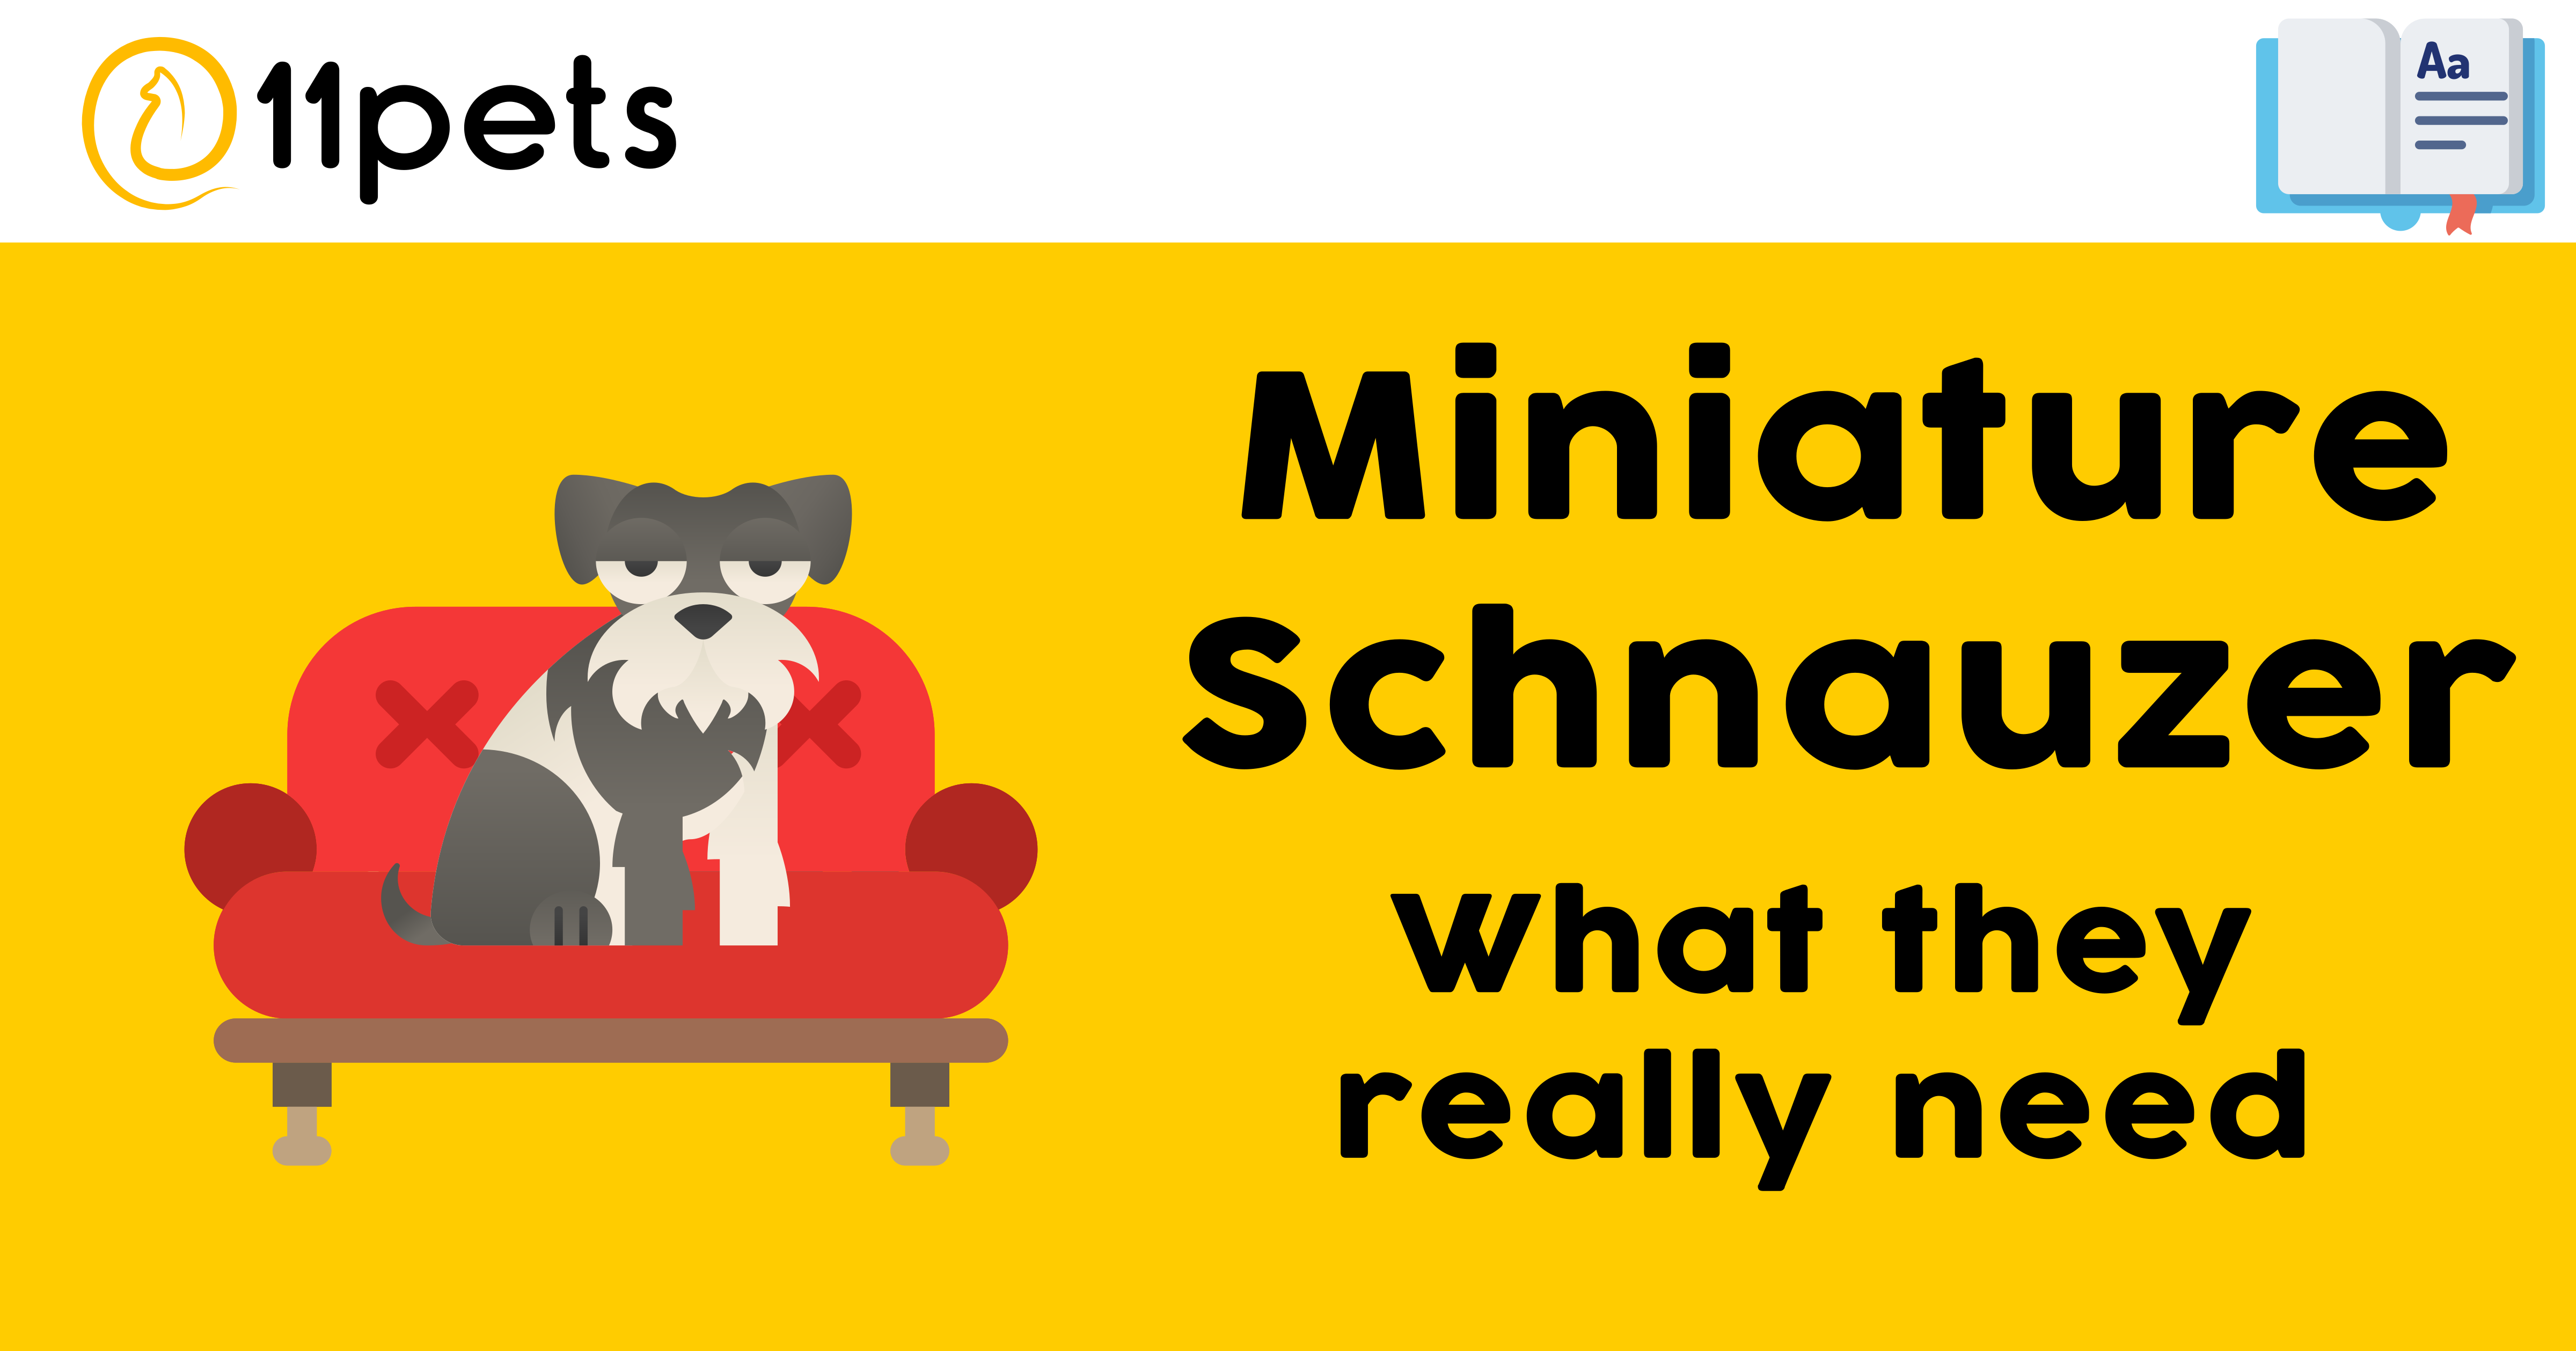 Miniature Schnauzer - What they really need